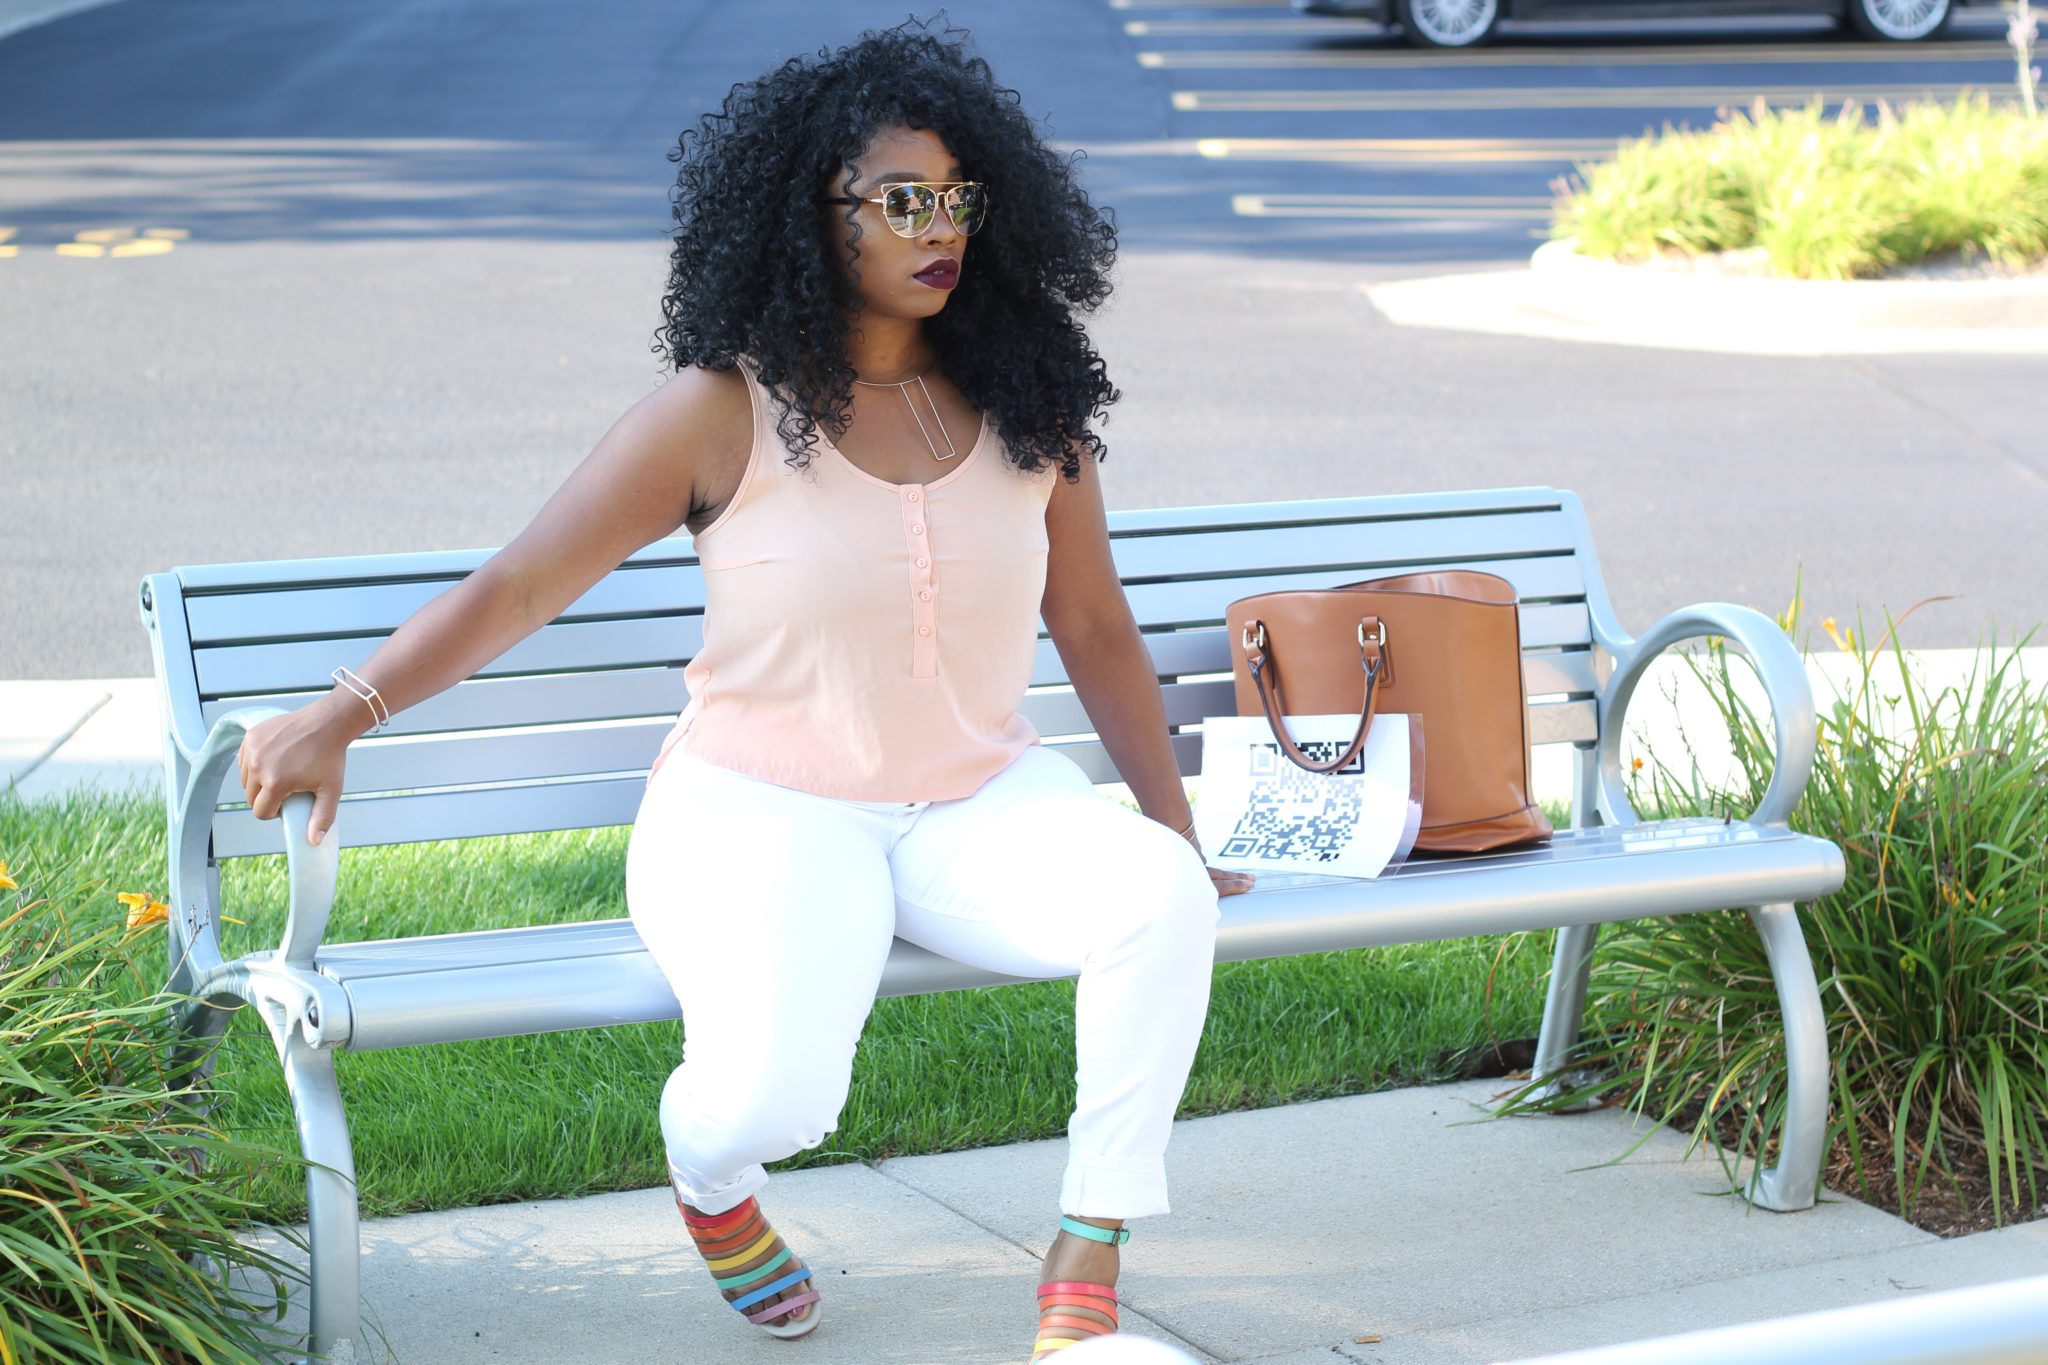 img_7085 Living for the Weekend! Fashion Fashion Nova Forever 21 Jeffrey Campbell Shoes Justfab OOTD Styling Thrifting Uncategorized